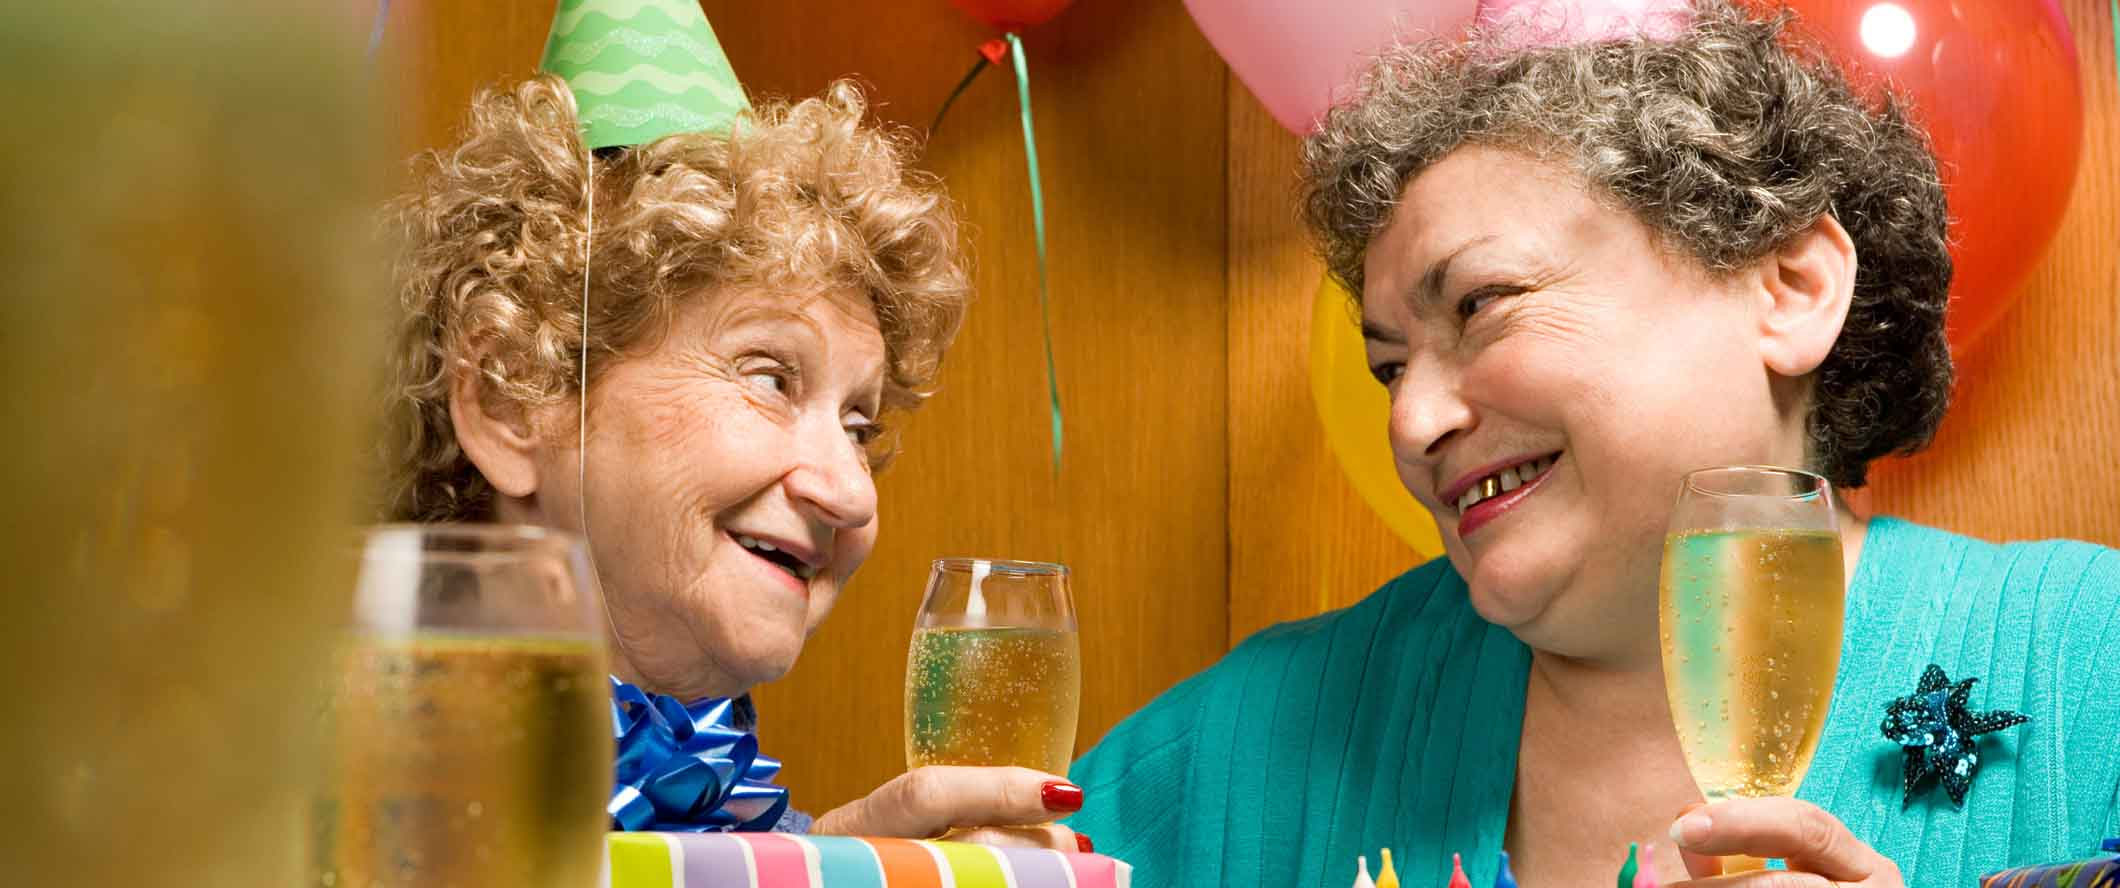 Spend Time with Friends to Live Longer